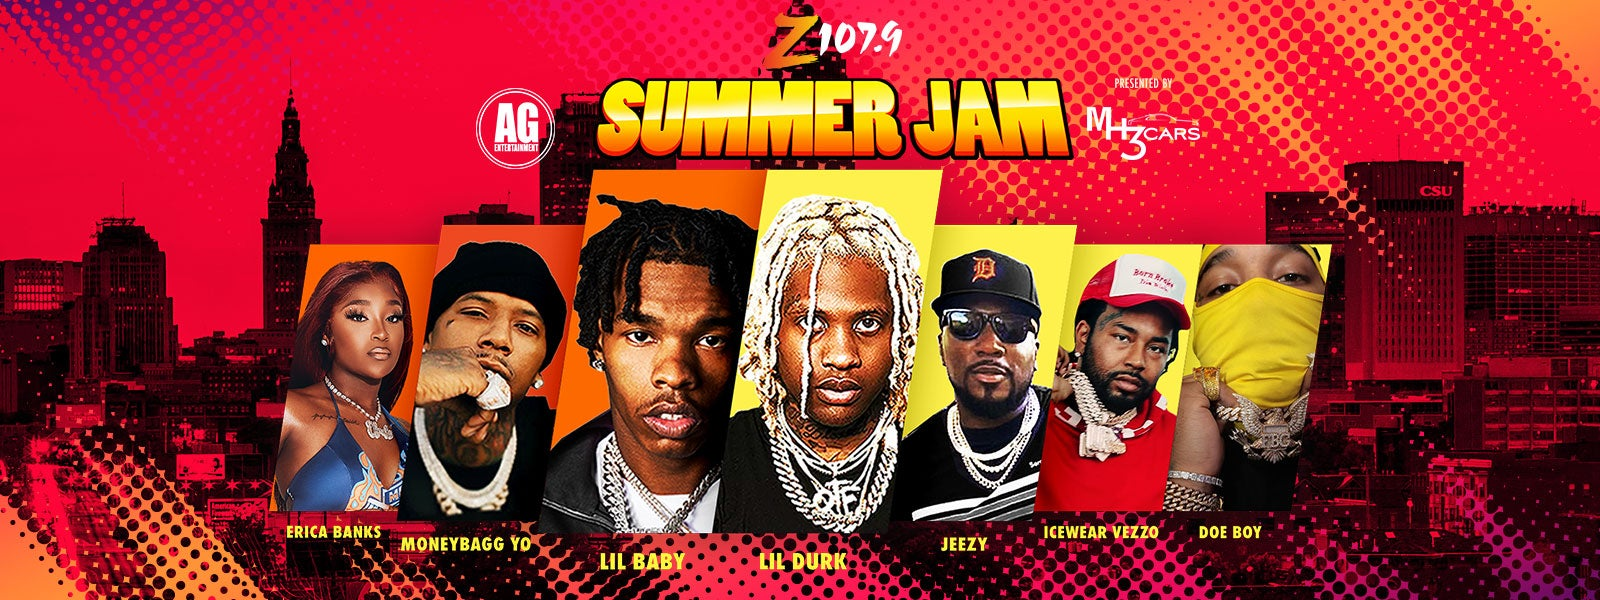 Summer Jam w/ Lil Baby and Friends